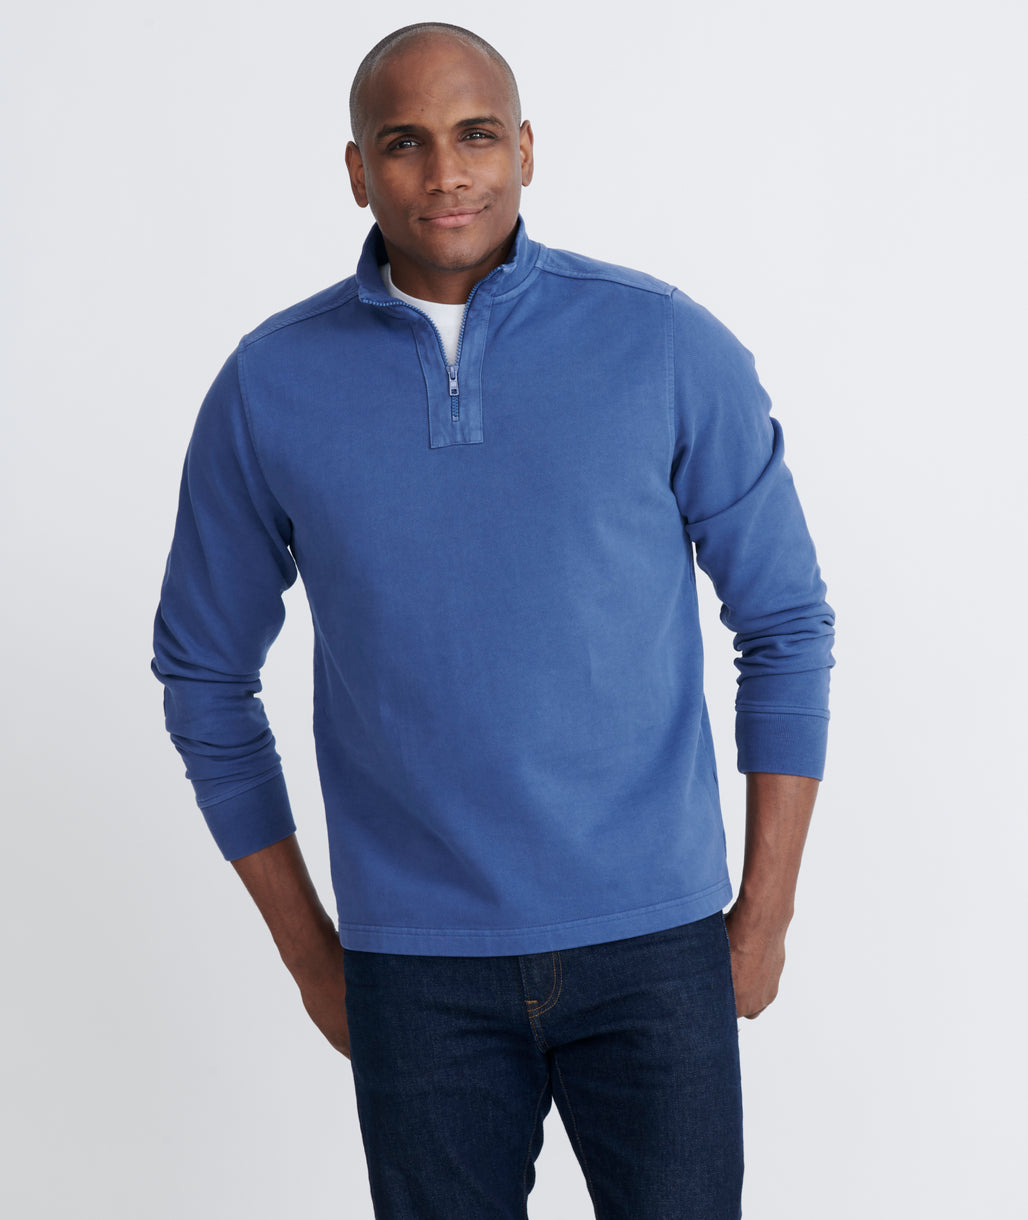 Model wearing a  Wolfred - Mid Blue